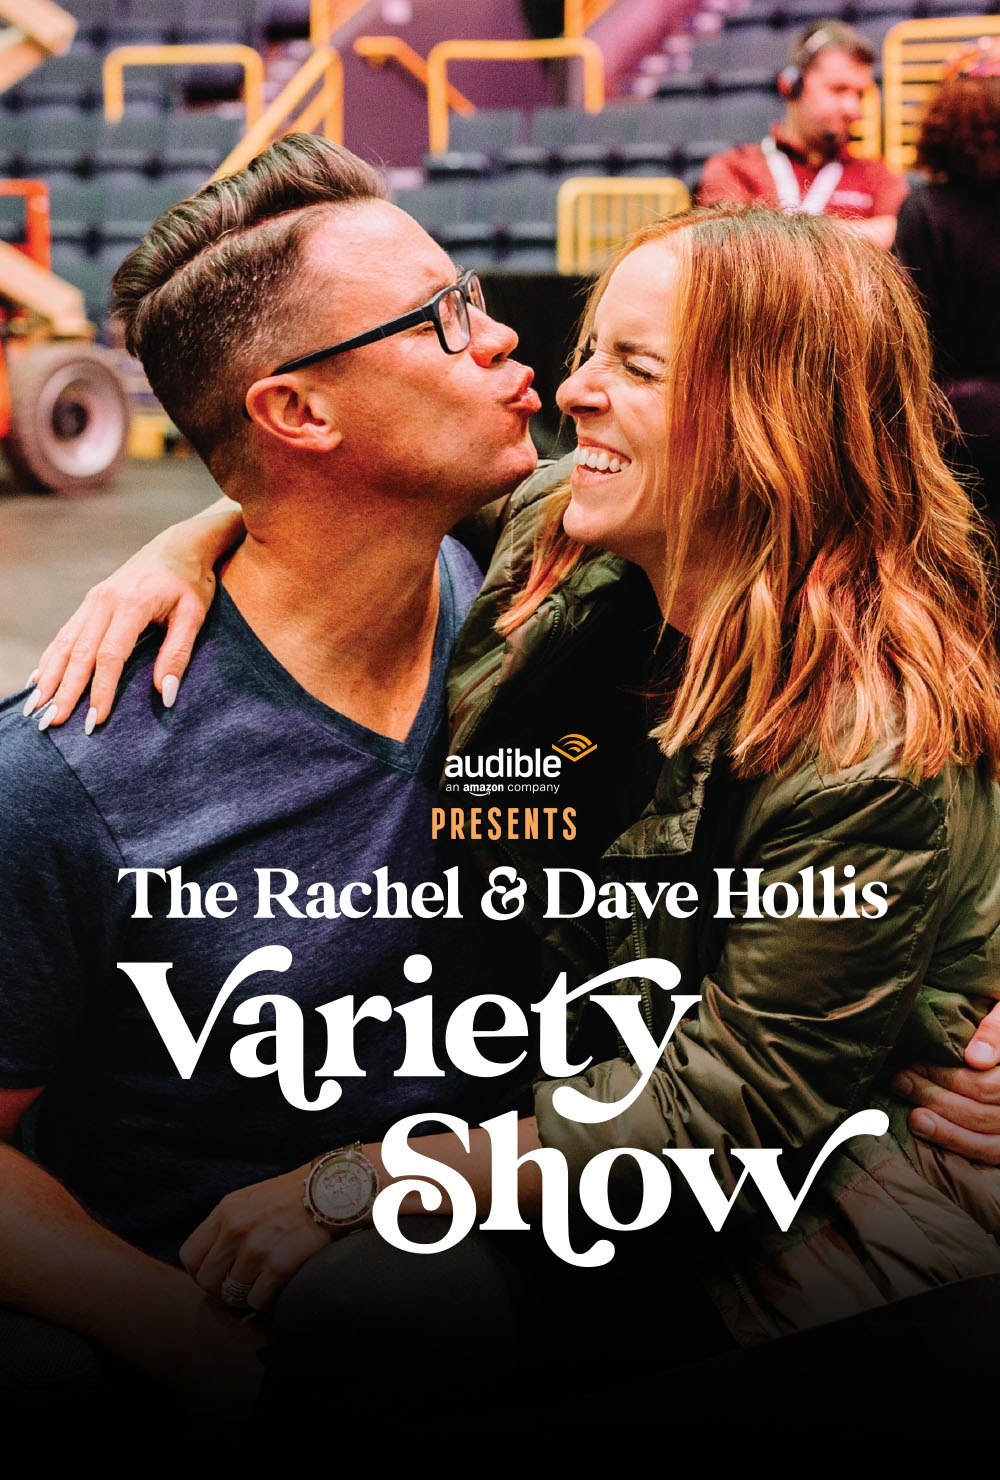 The Rachel and Dave Hollis Variety Show